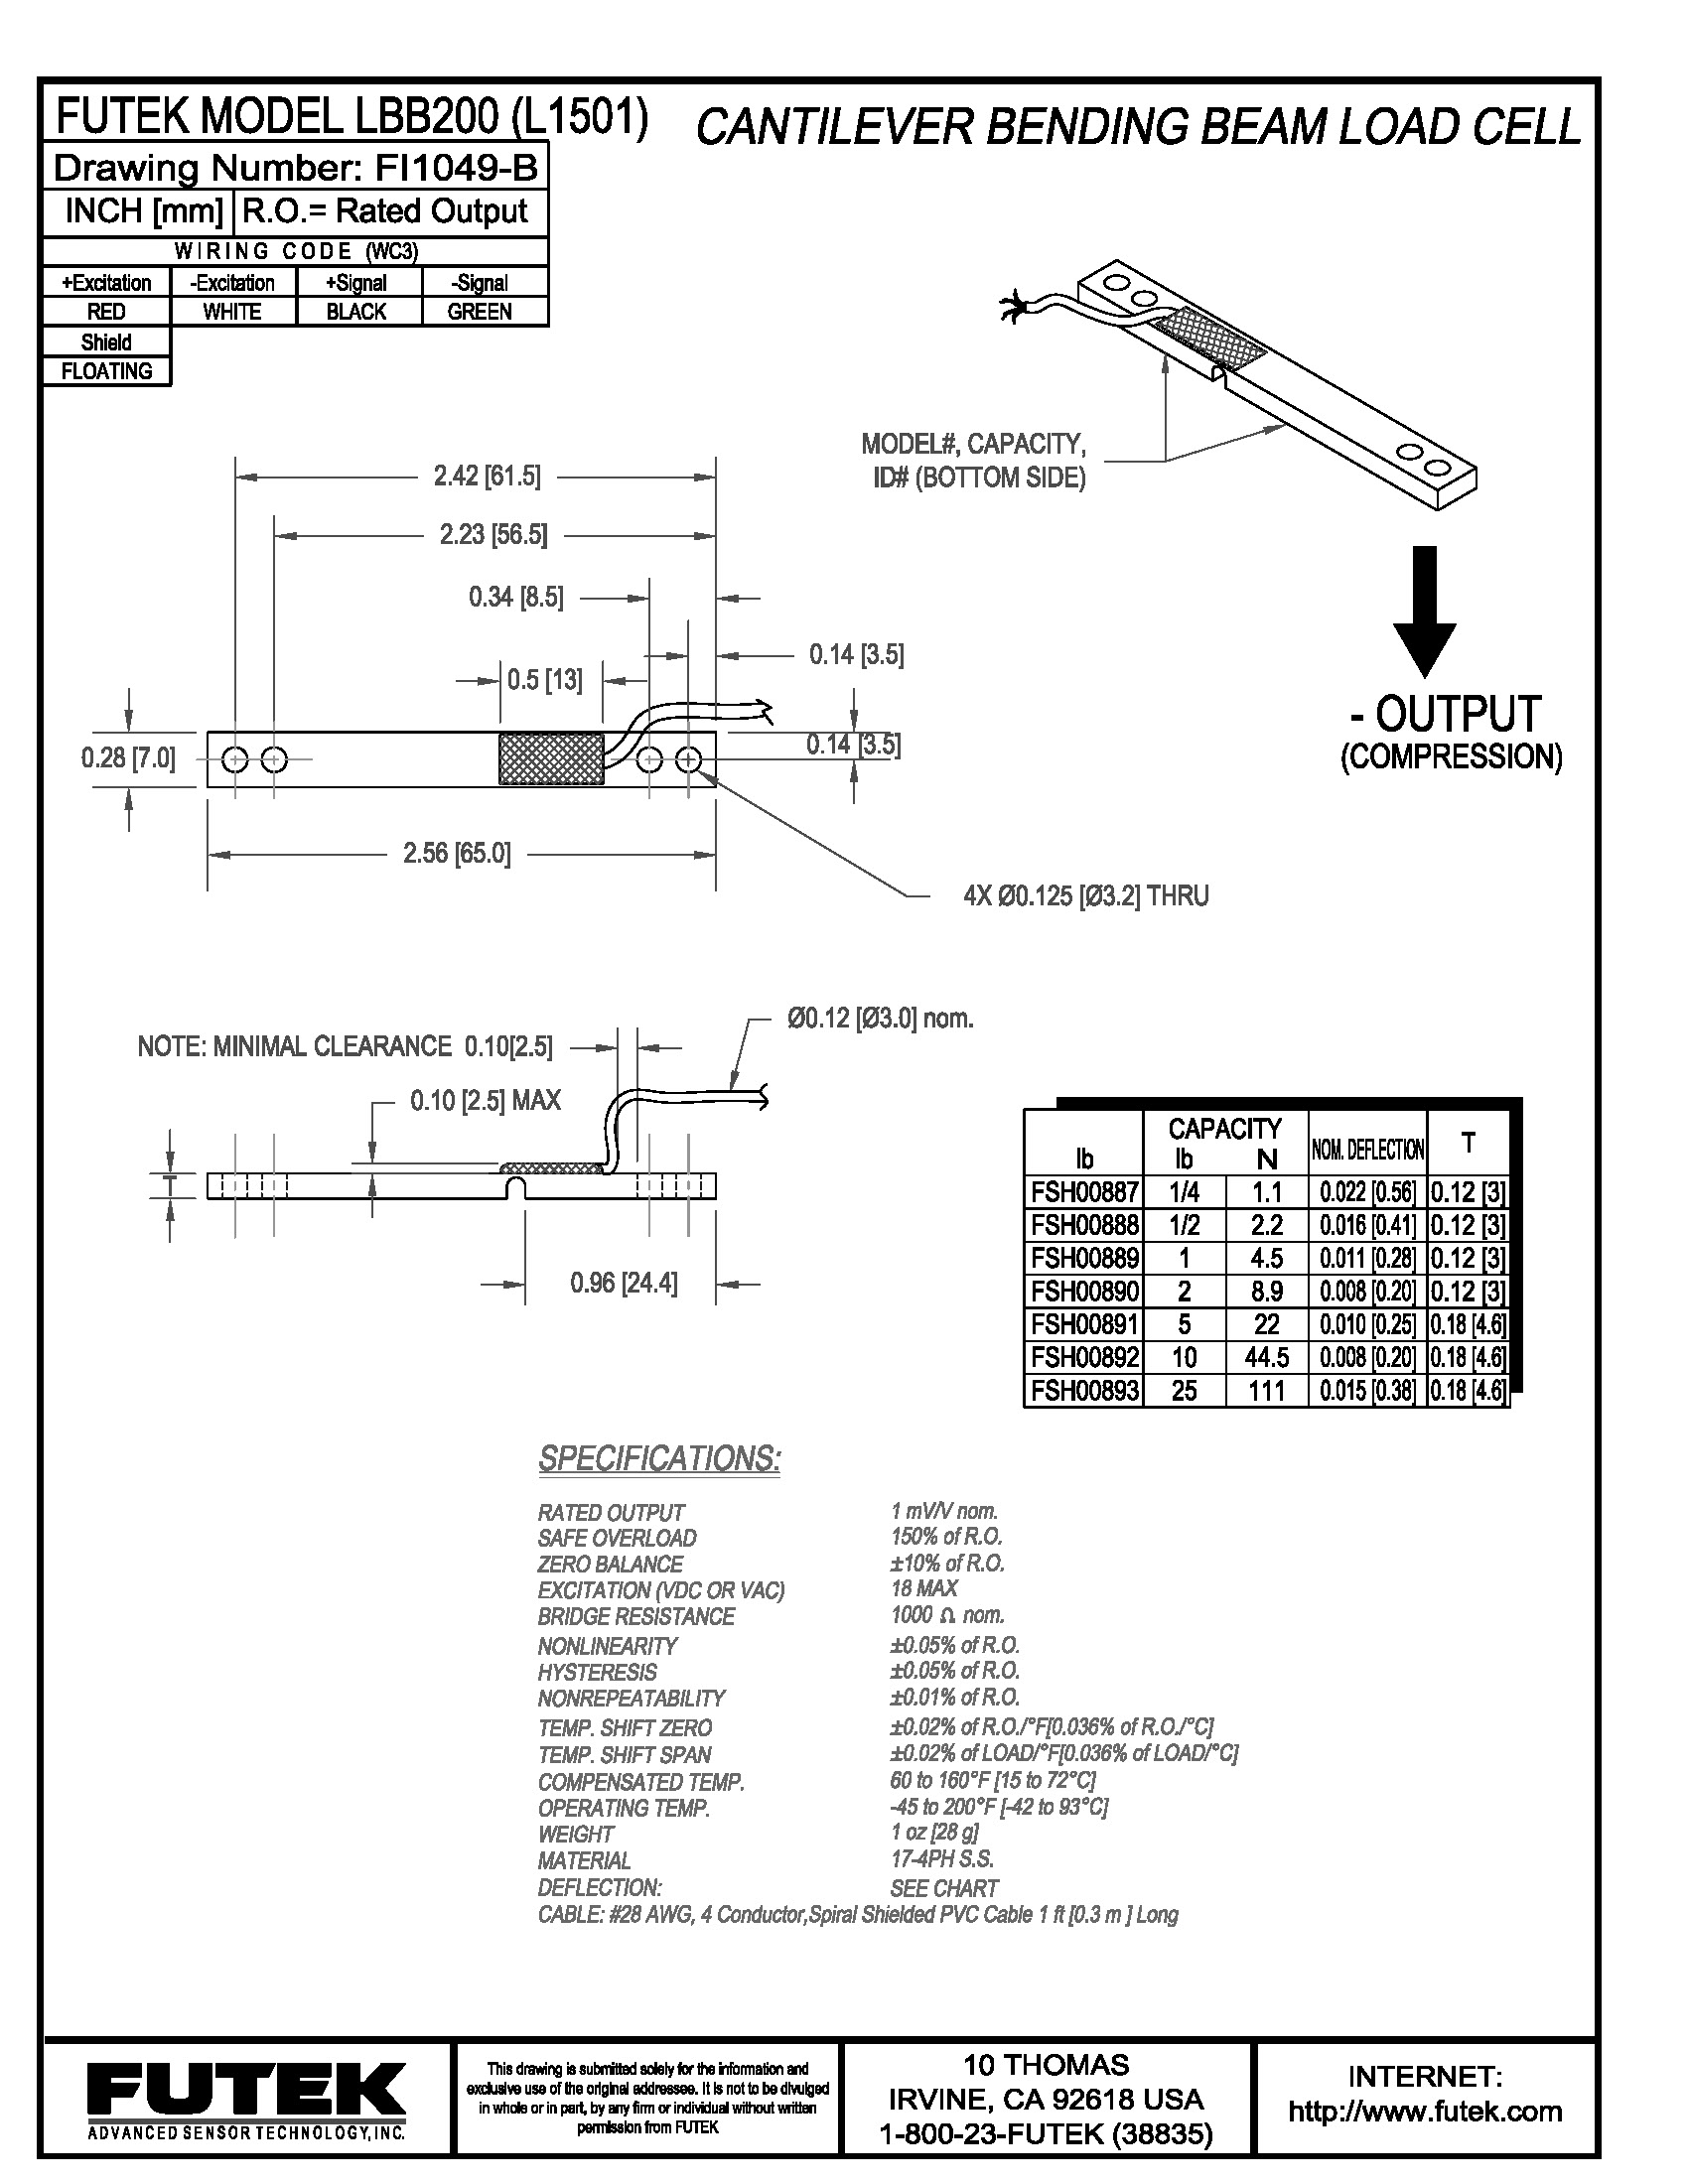 Interface Load Cell Wiring Diagram Manual Guide